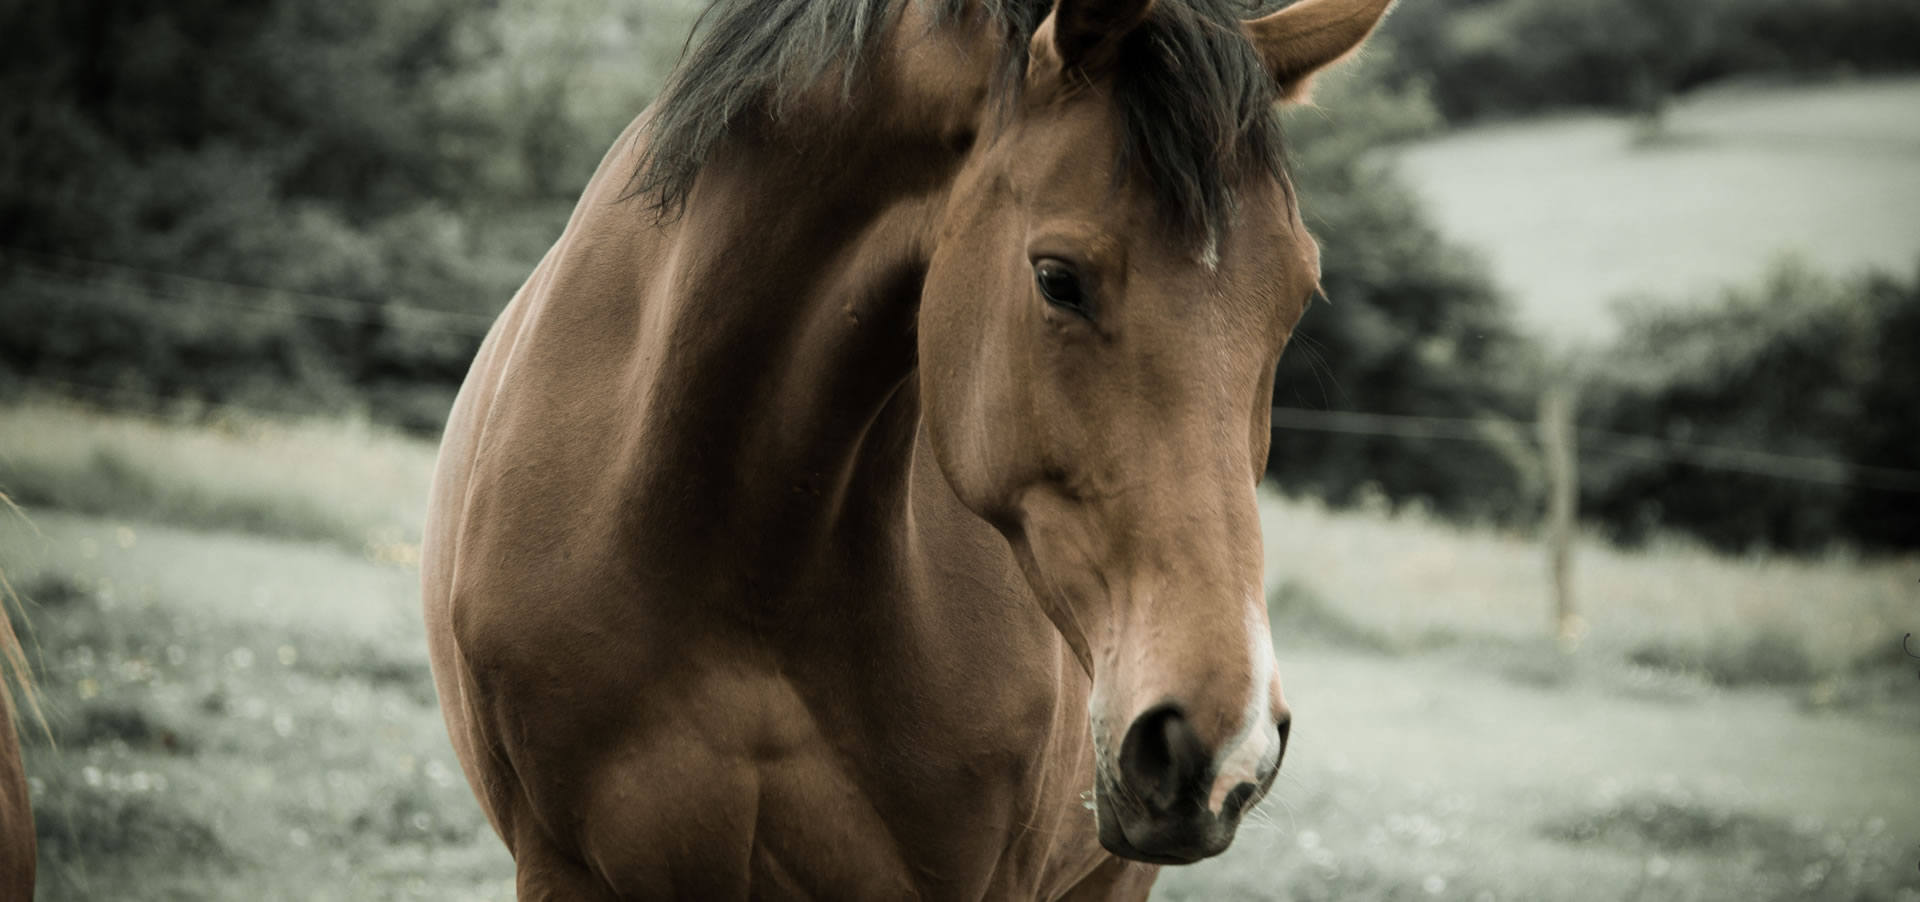 Horses need protecting during winter